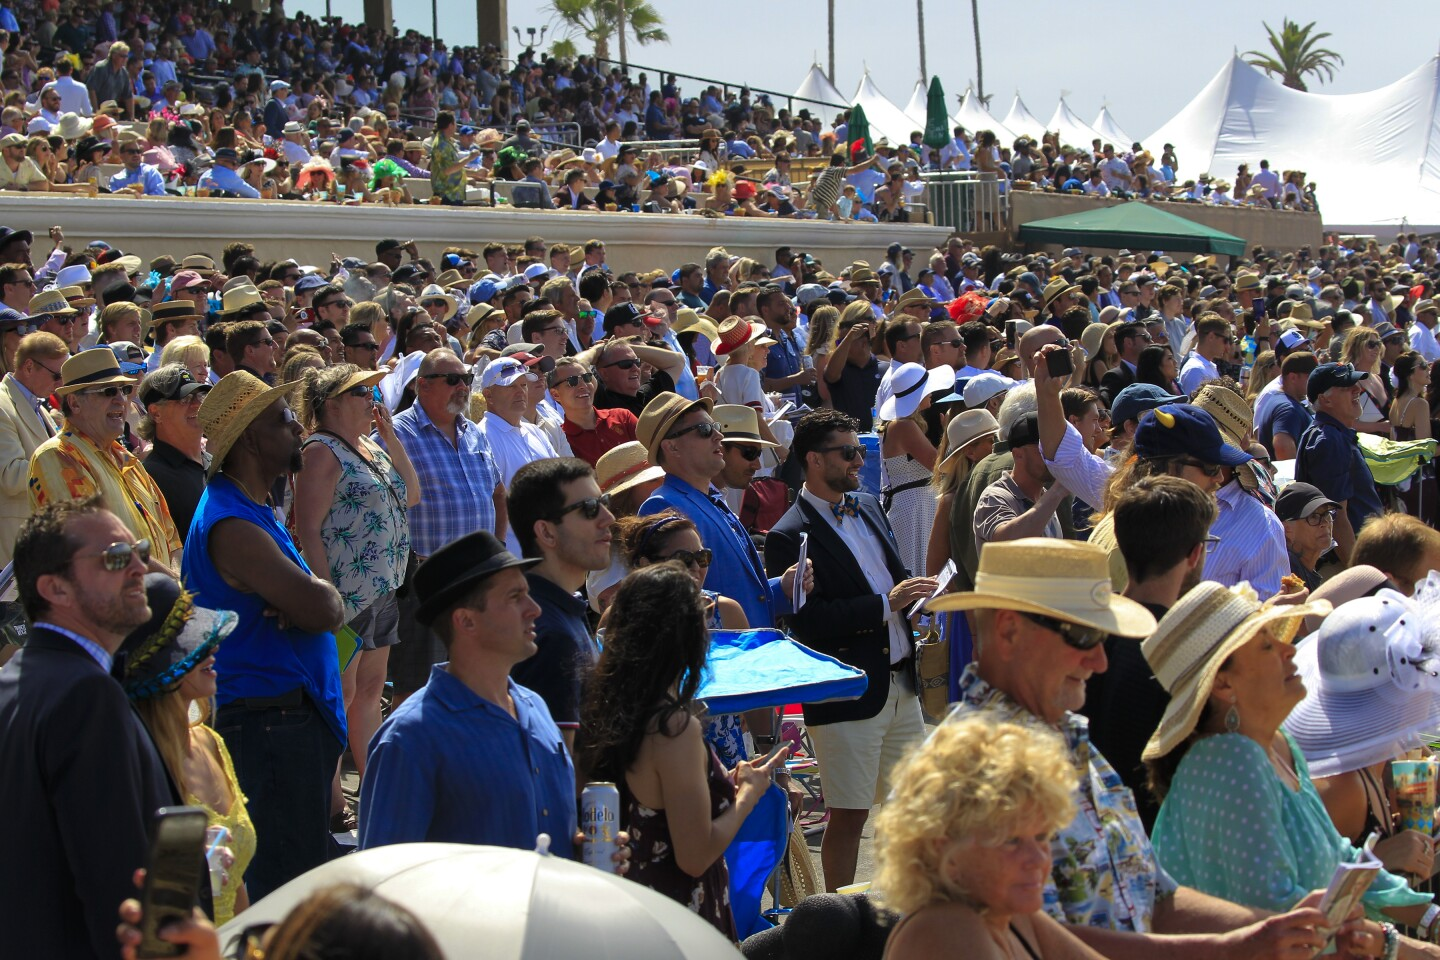 Race fans cheer for their horse on Opening Day at Del Mar Racetrack on Wednesday July 17th, 2019.